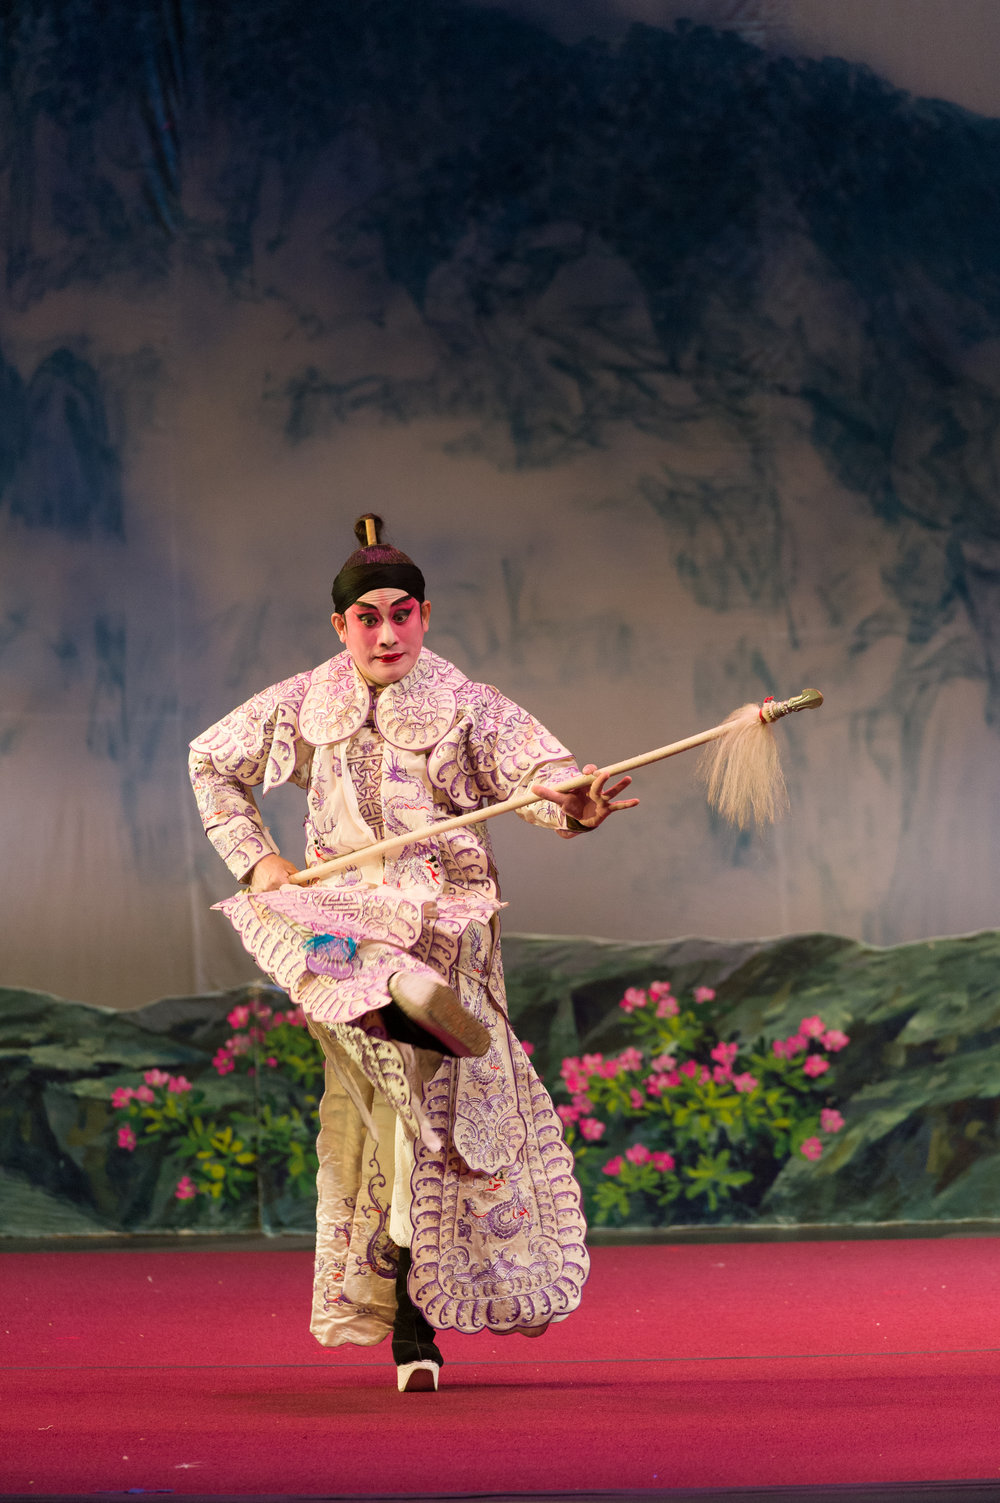 Red.Bean.Cantonese.Opera.Performance.Show.2014.July.27.2014.1425.jpg